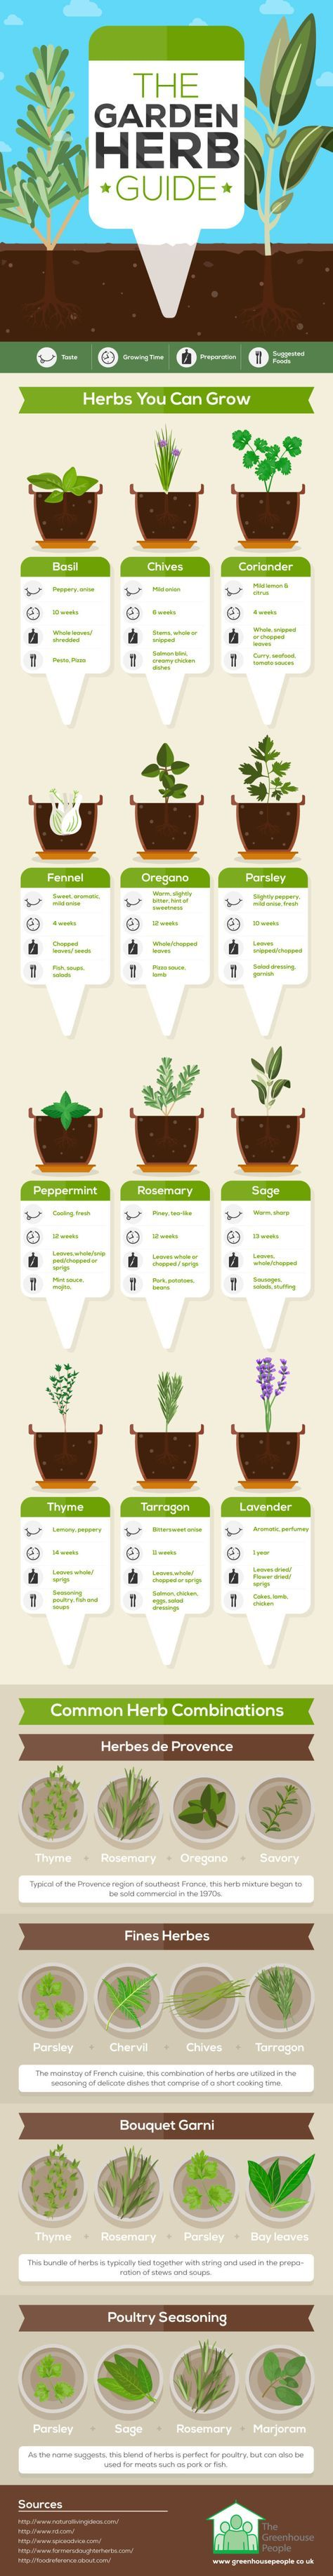 This One Infographic Will Change Your Homegrown Herb Game - HouseBeautiful.com